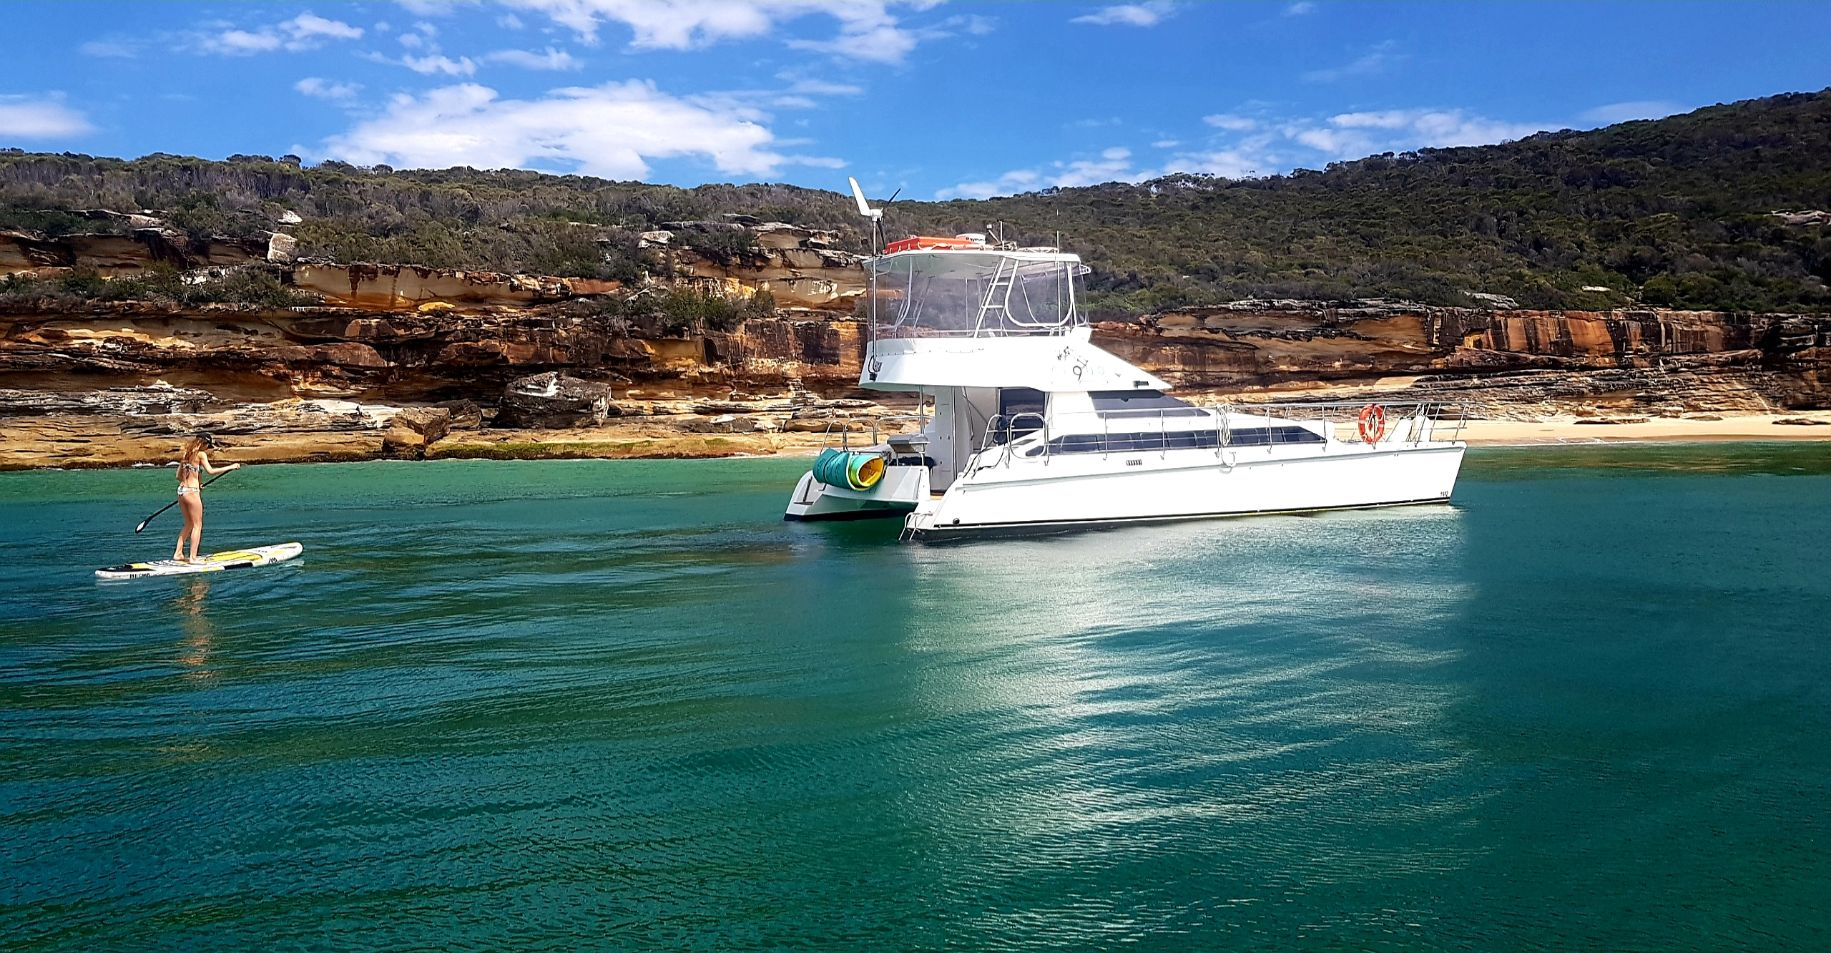 Cloud 9 - Soak up the sun and spoil your guests on this newly refurbished catamaran.